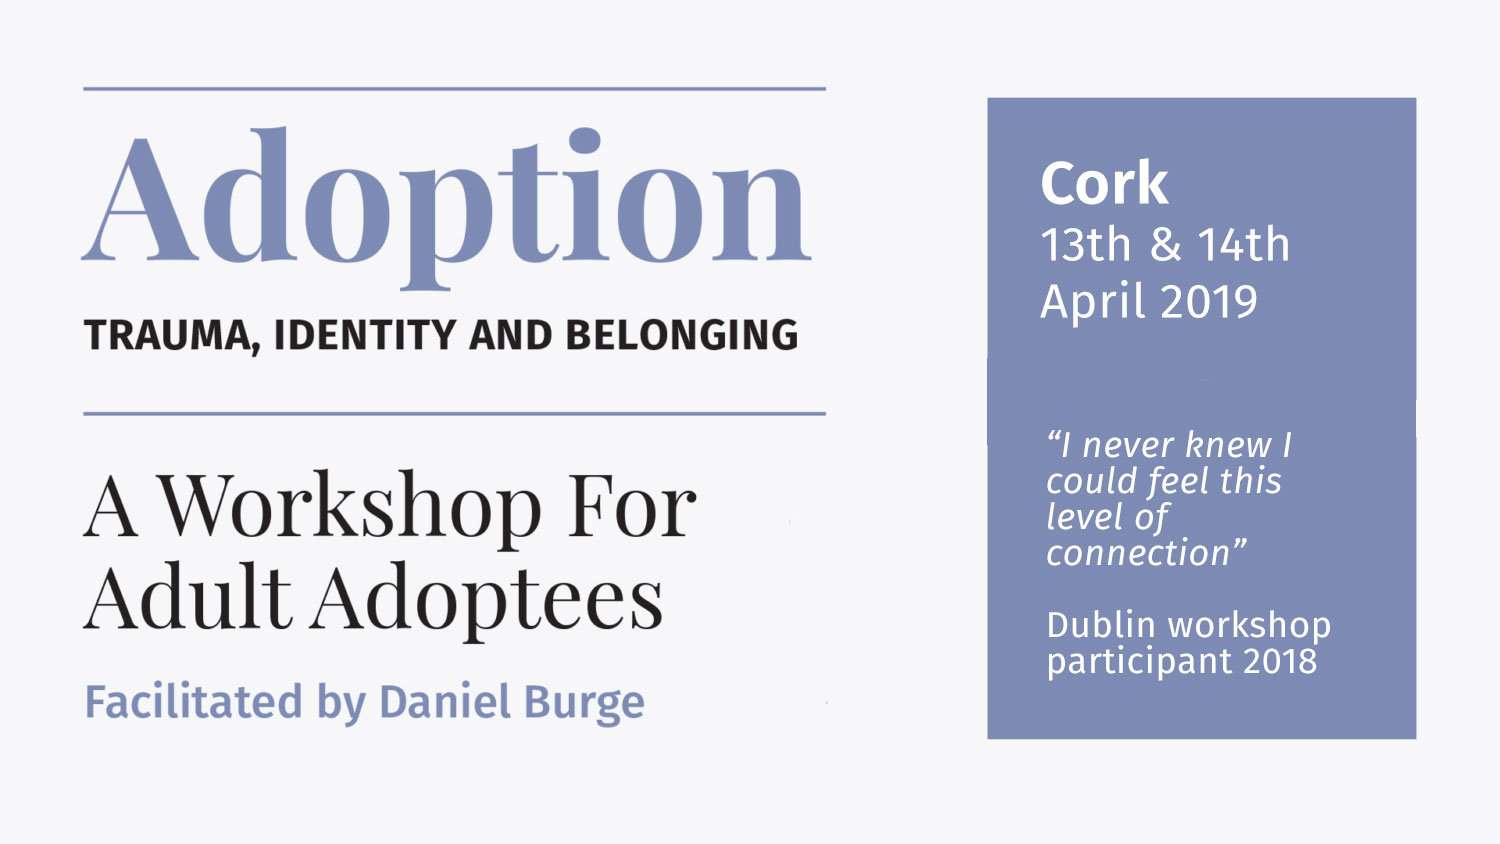 Adoption healing workshop Cork April 2019